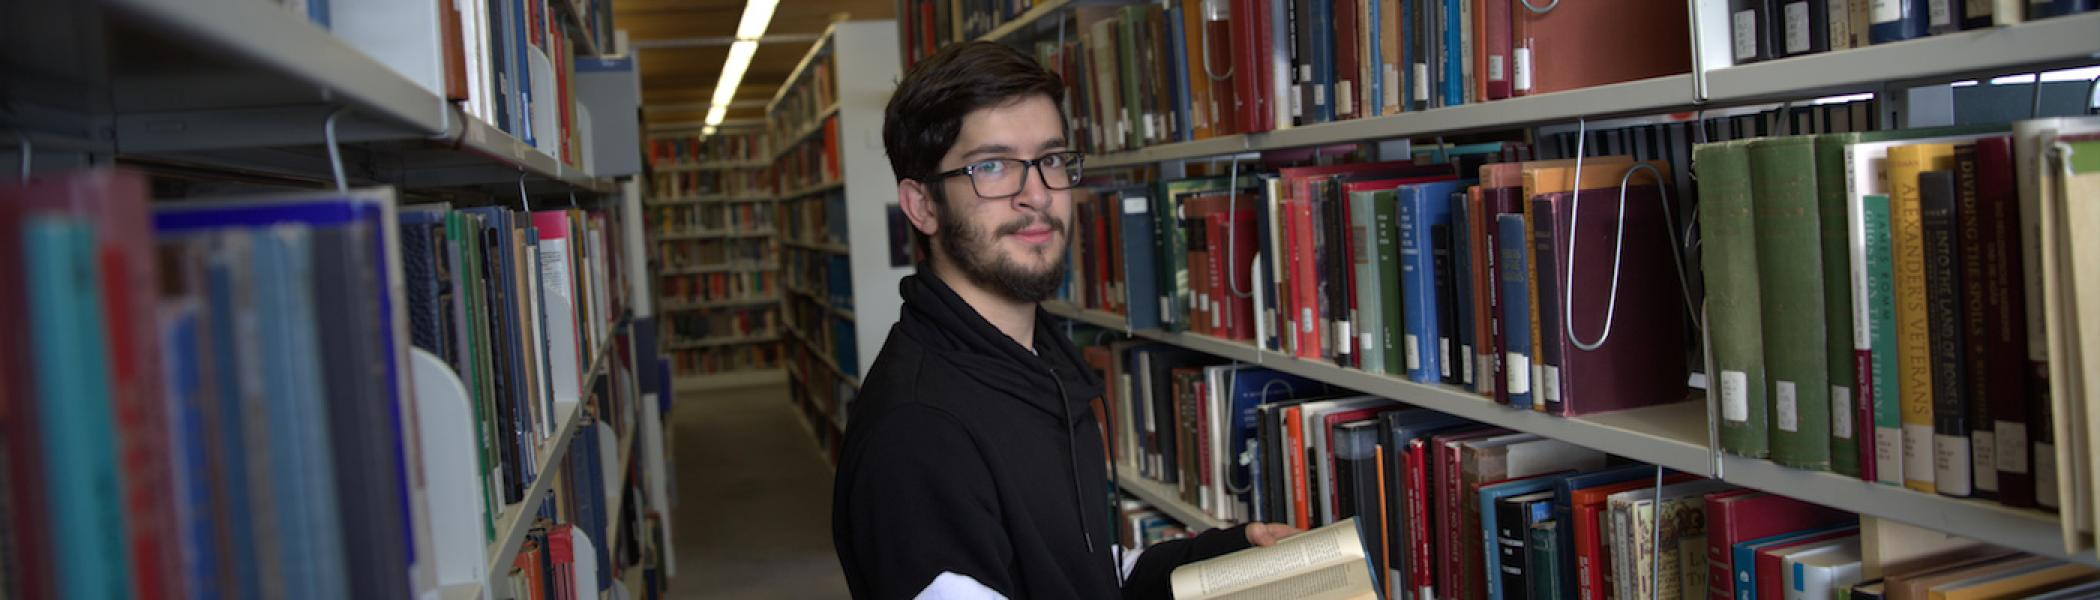 A guy holding a book and standing between bookshelves in the Bata Library.